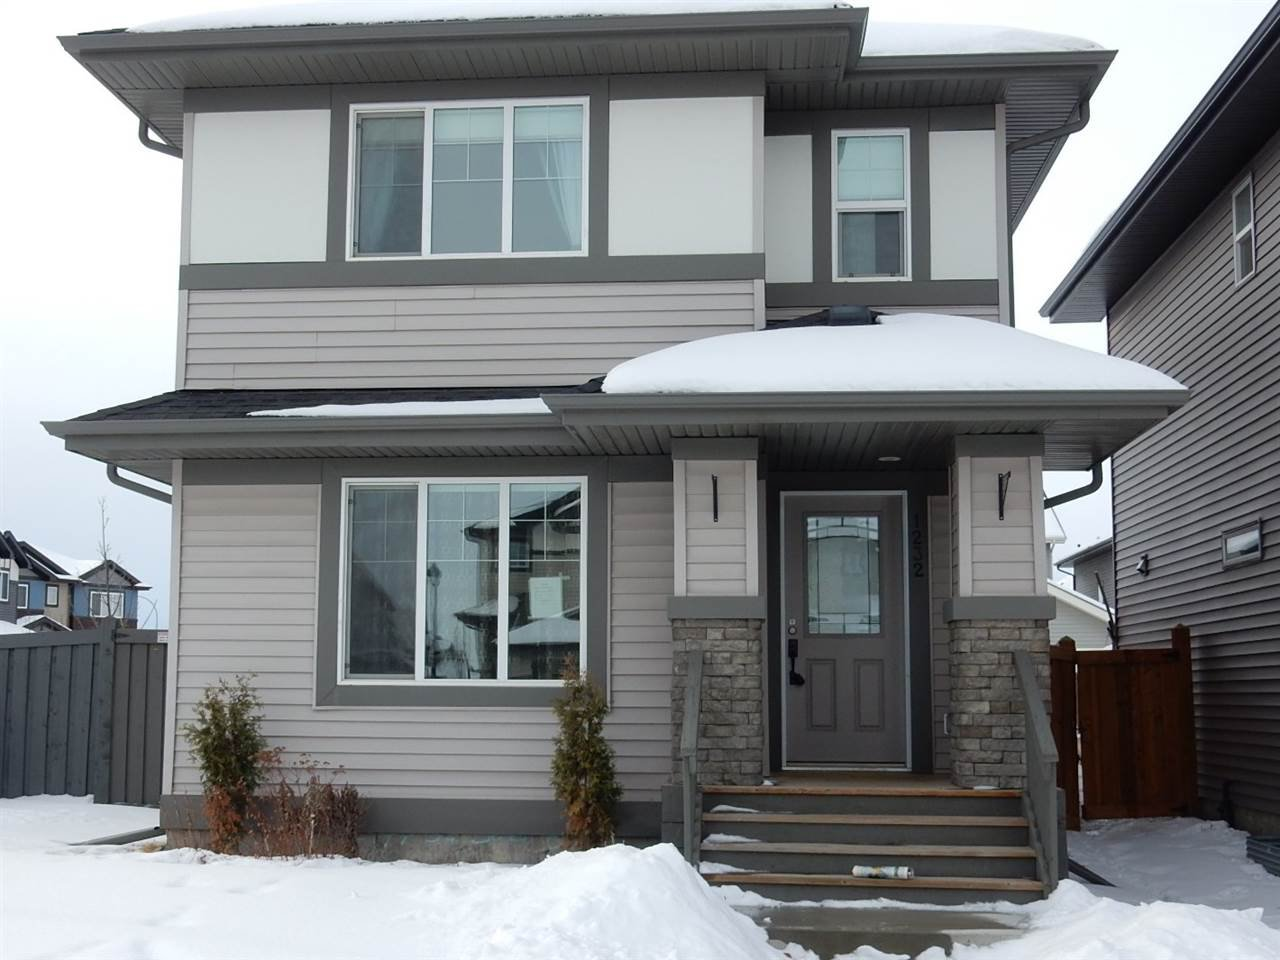 Main Photo: 1232 177 Street in Edmonton: Zone 56 House for sale : MLS®# E4191635